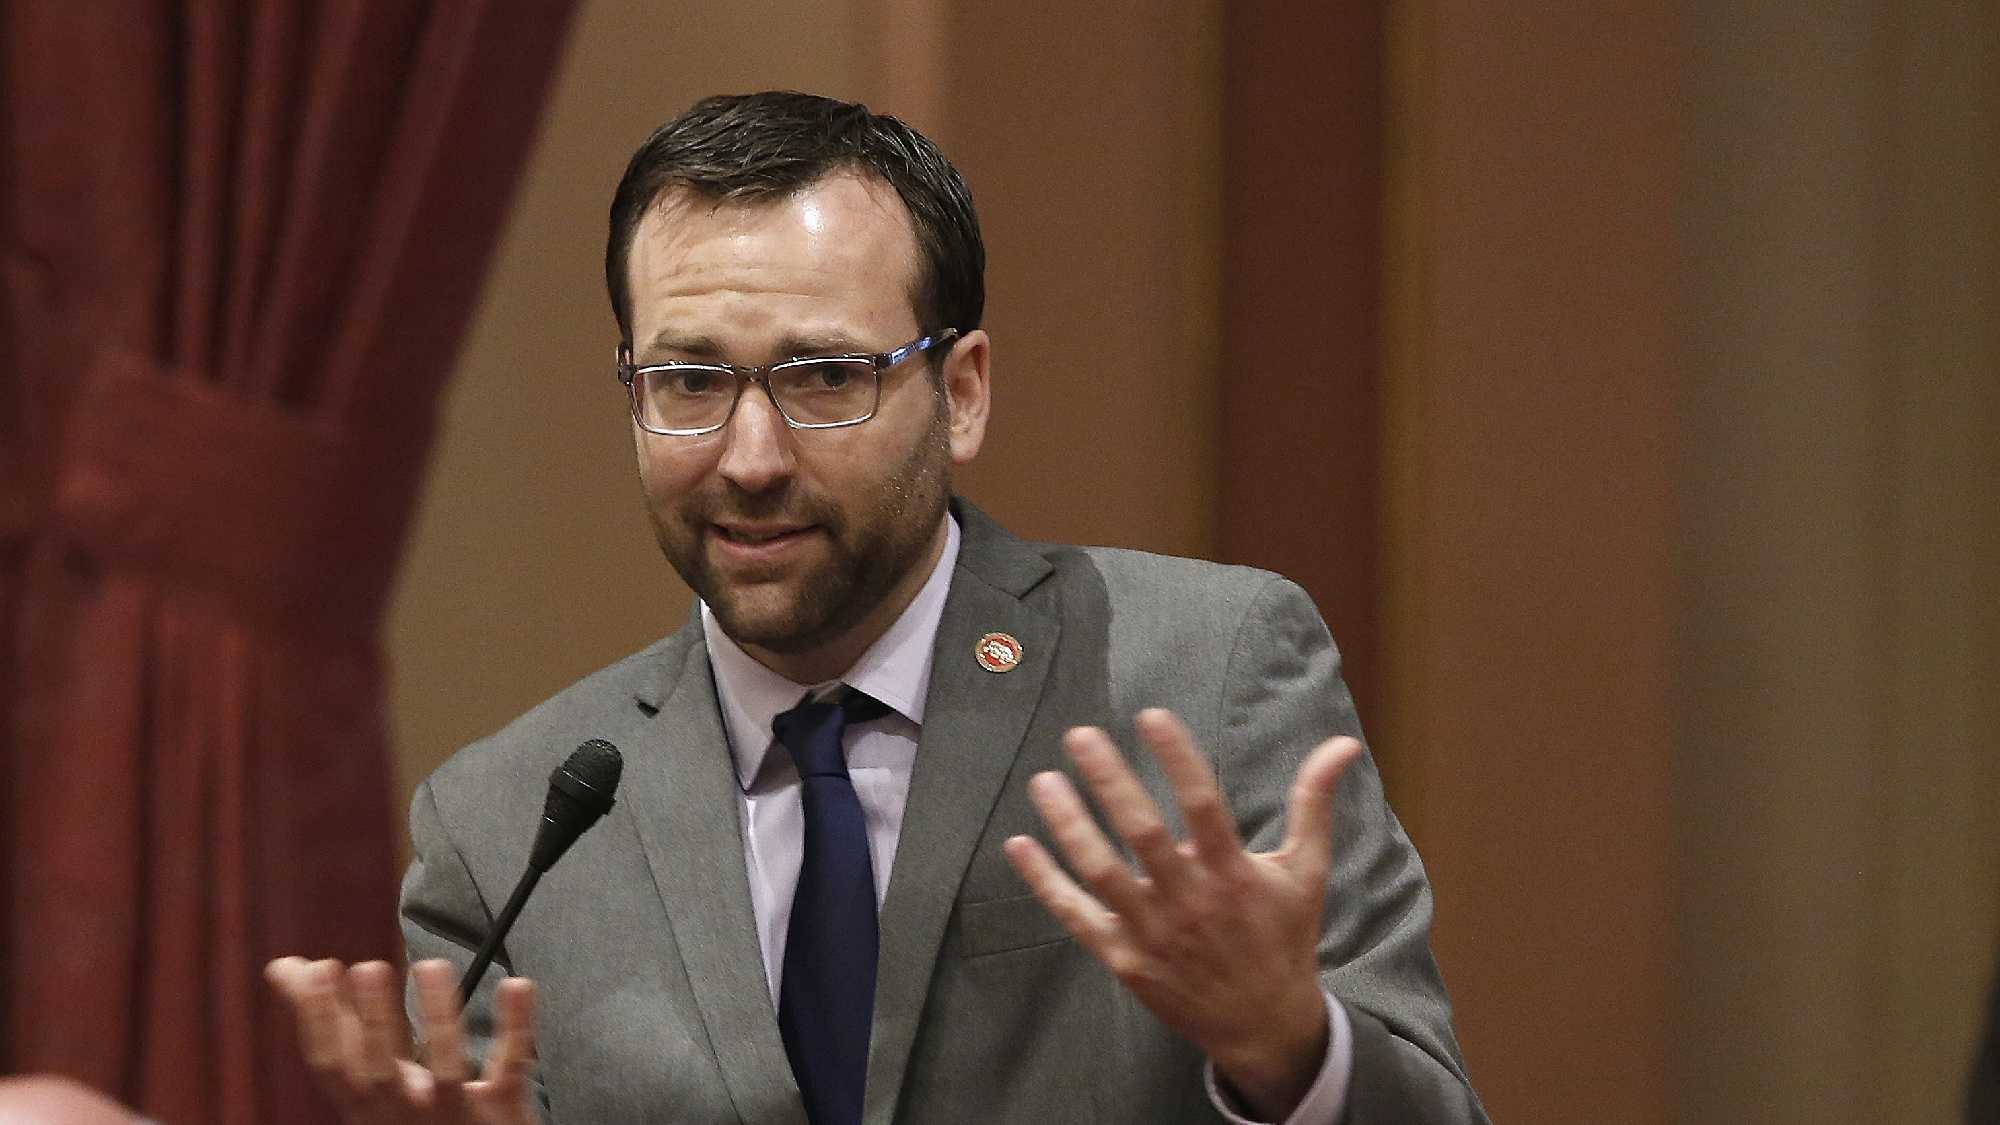 State Sen. Ben Allen, D-Santa Monica, urges passage of his emergency legislation that would allow a man with HIV to receive part of his HIV-positive husband's liver.